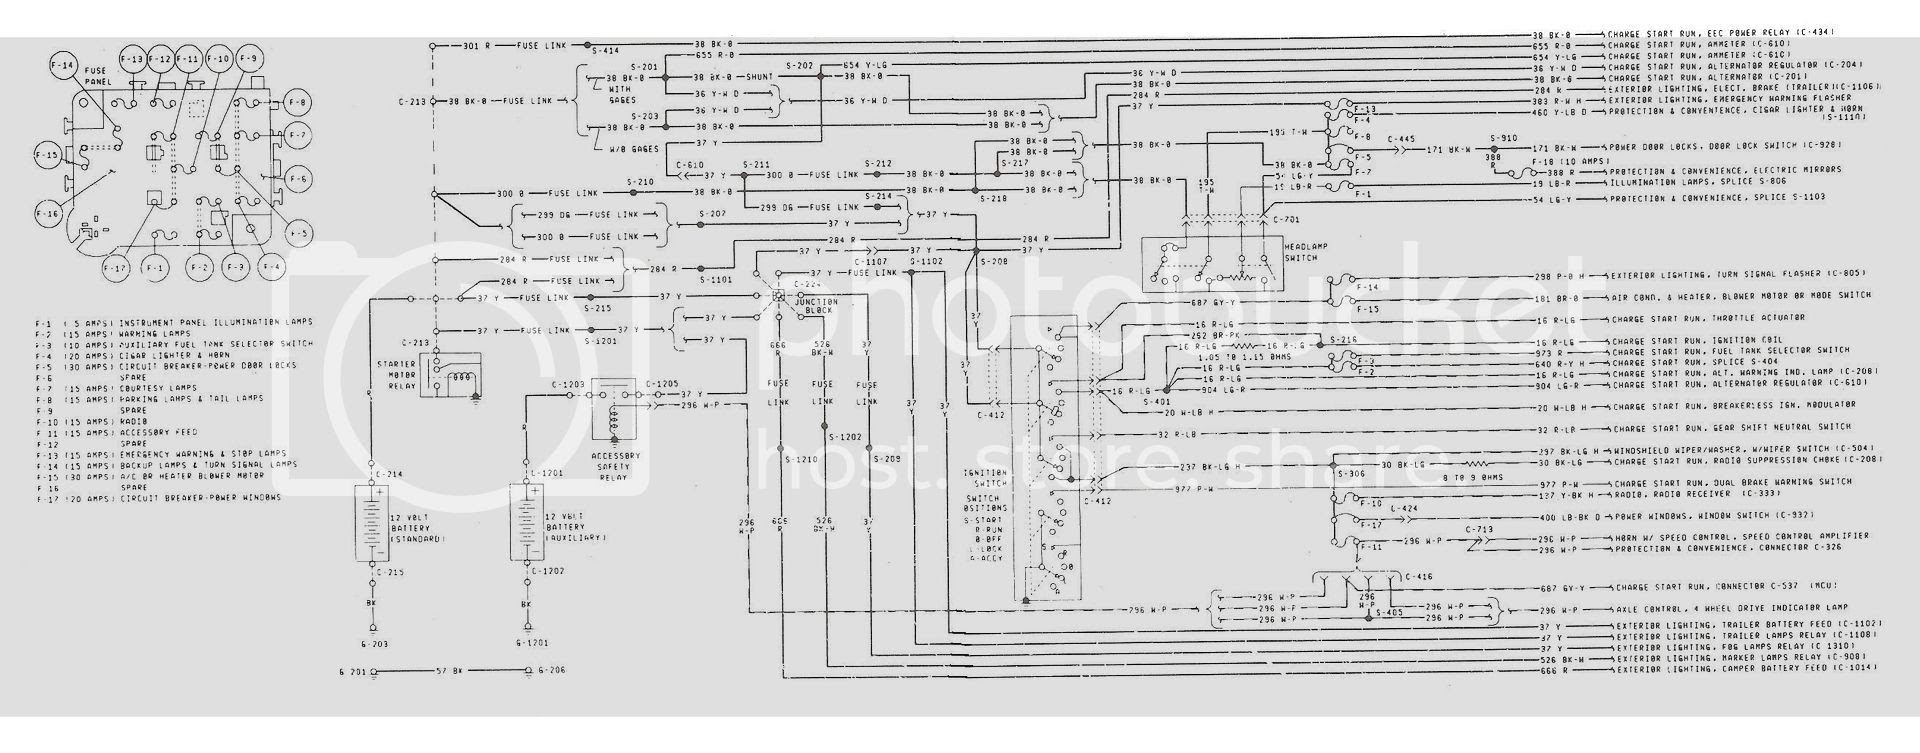 02 F350 Fuse Link Wiring Diagram Wiring Diagrams Journal Journal Miglioribanche It